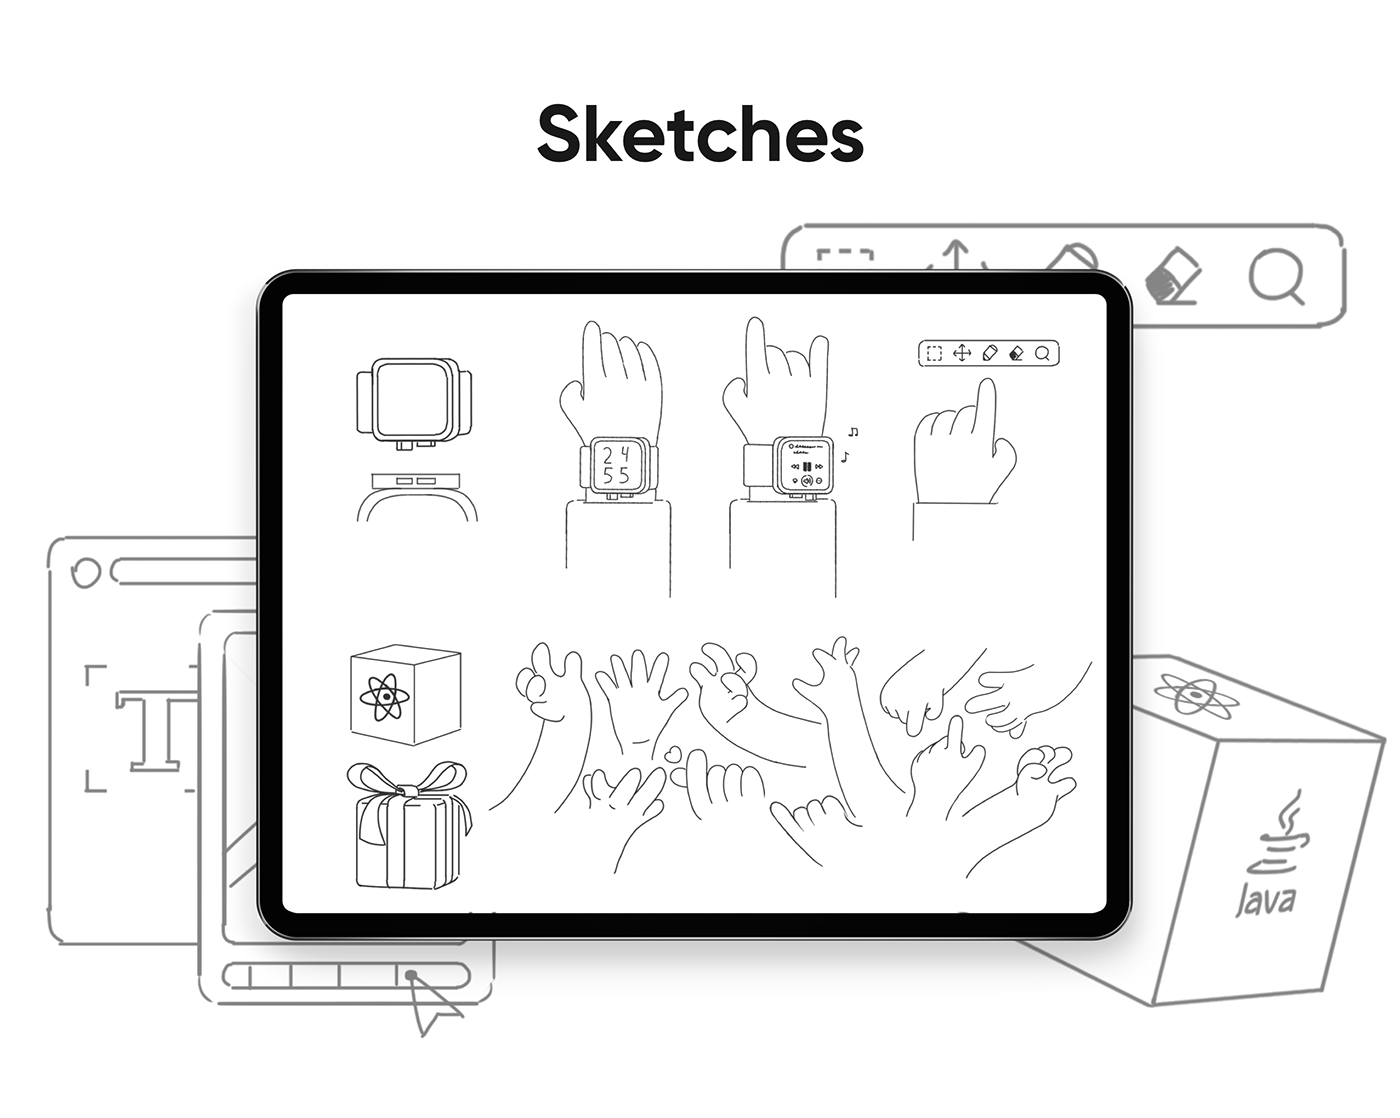 3D 3D Objects 3D UI Kit animation  ILLUSTRATION  motion design Production sketches storybord workflow